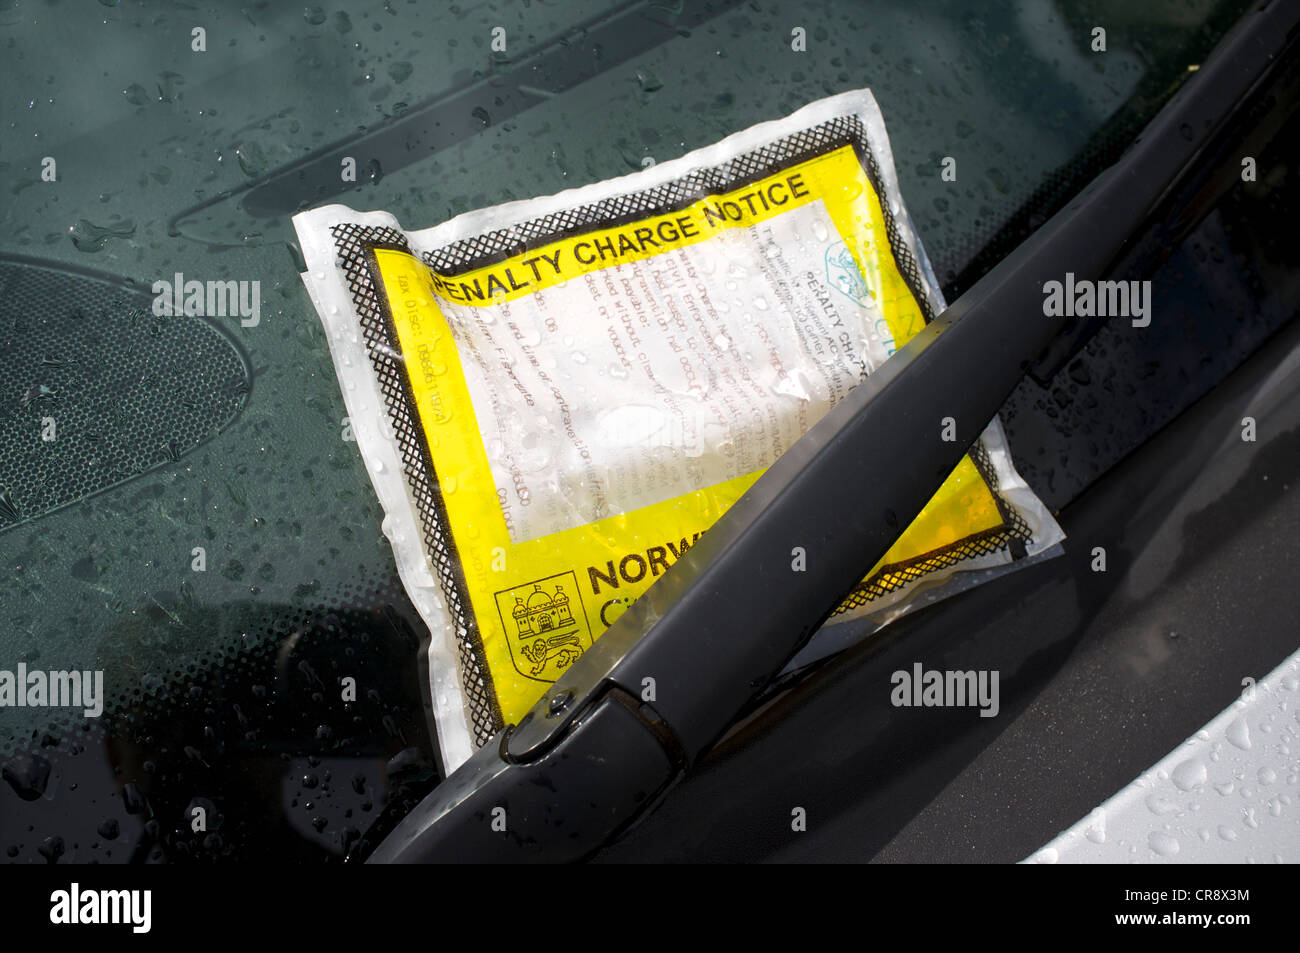 Car Parking Penalty Charge Notice on Car Windscreen - Stock Image